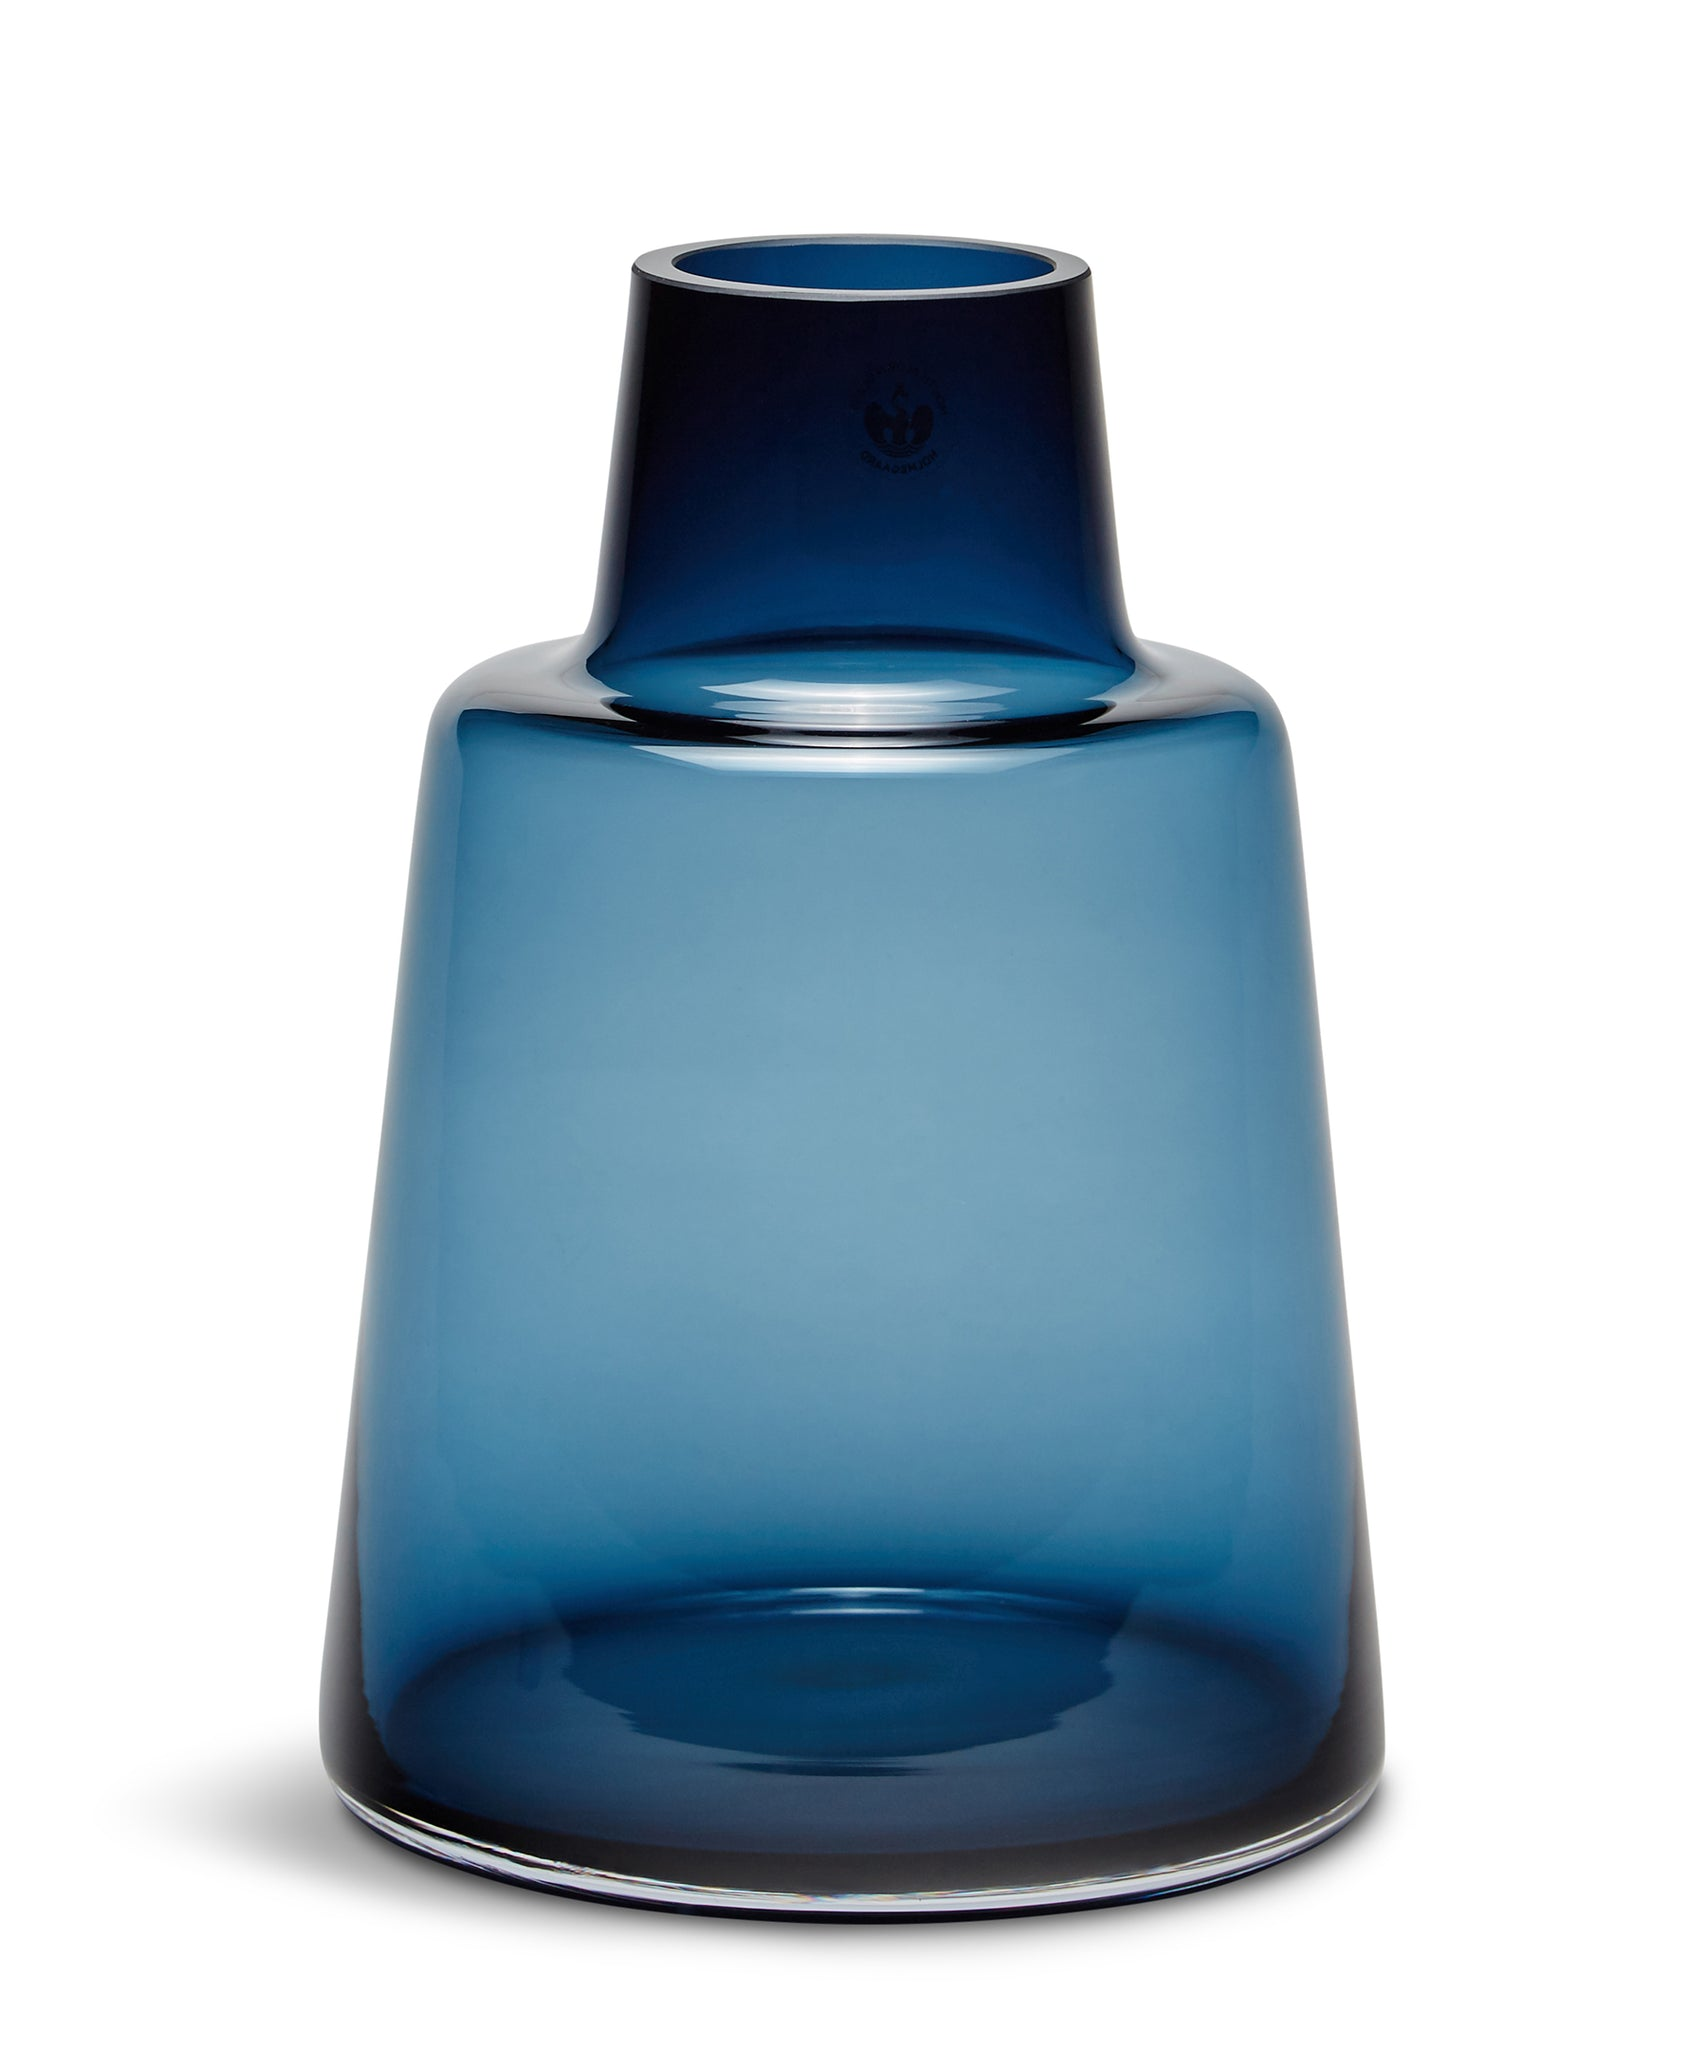 Flora Short Neck Vase 240 mm (Dark Blue) by Holmegaard